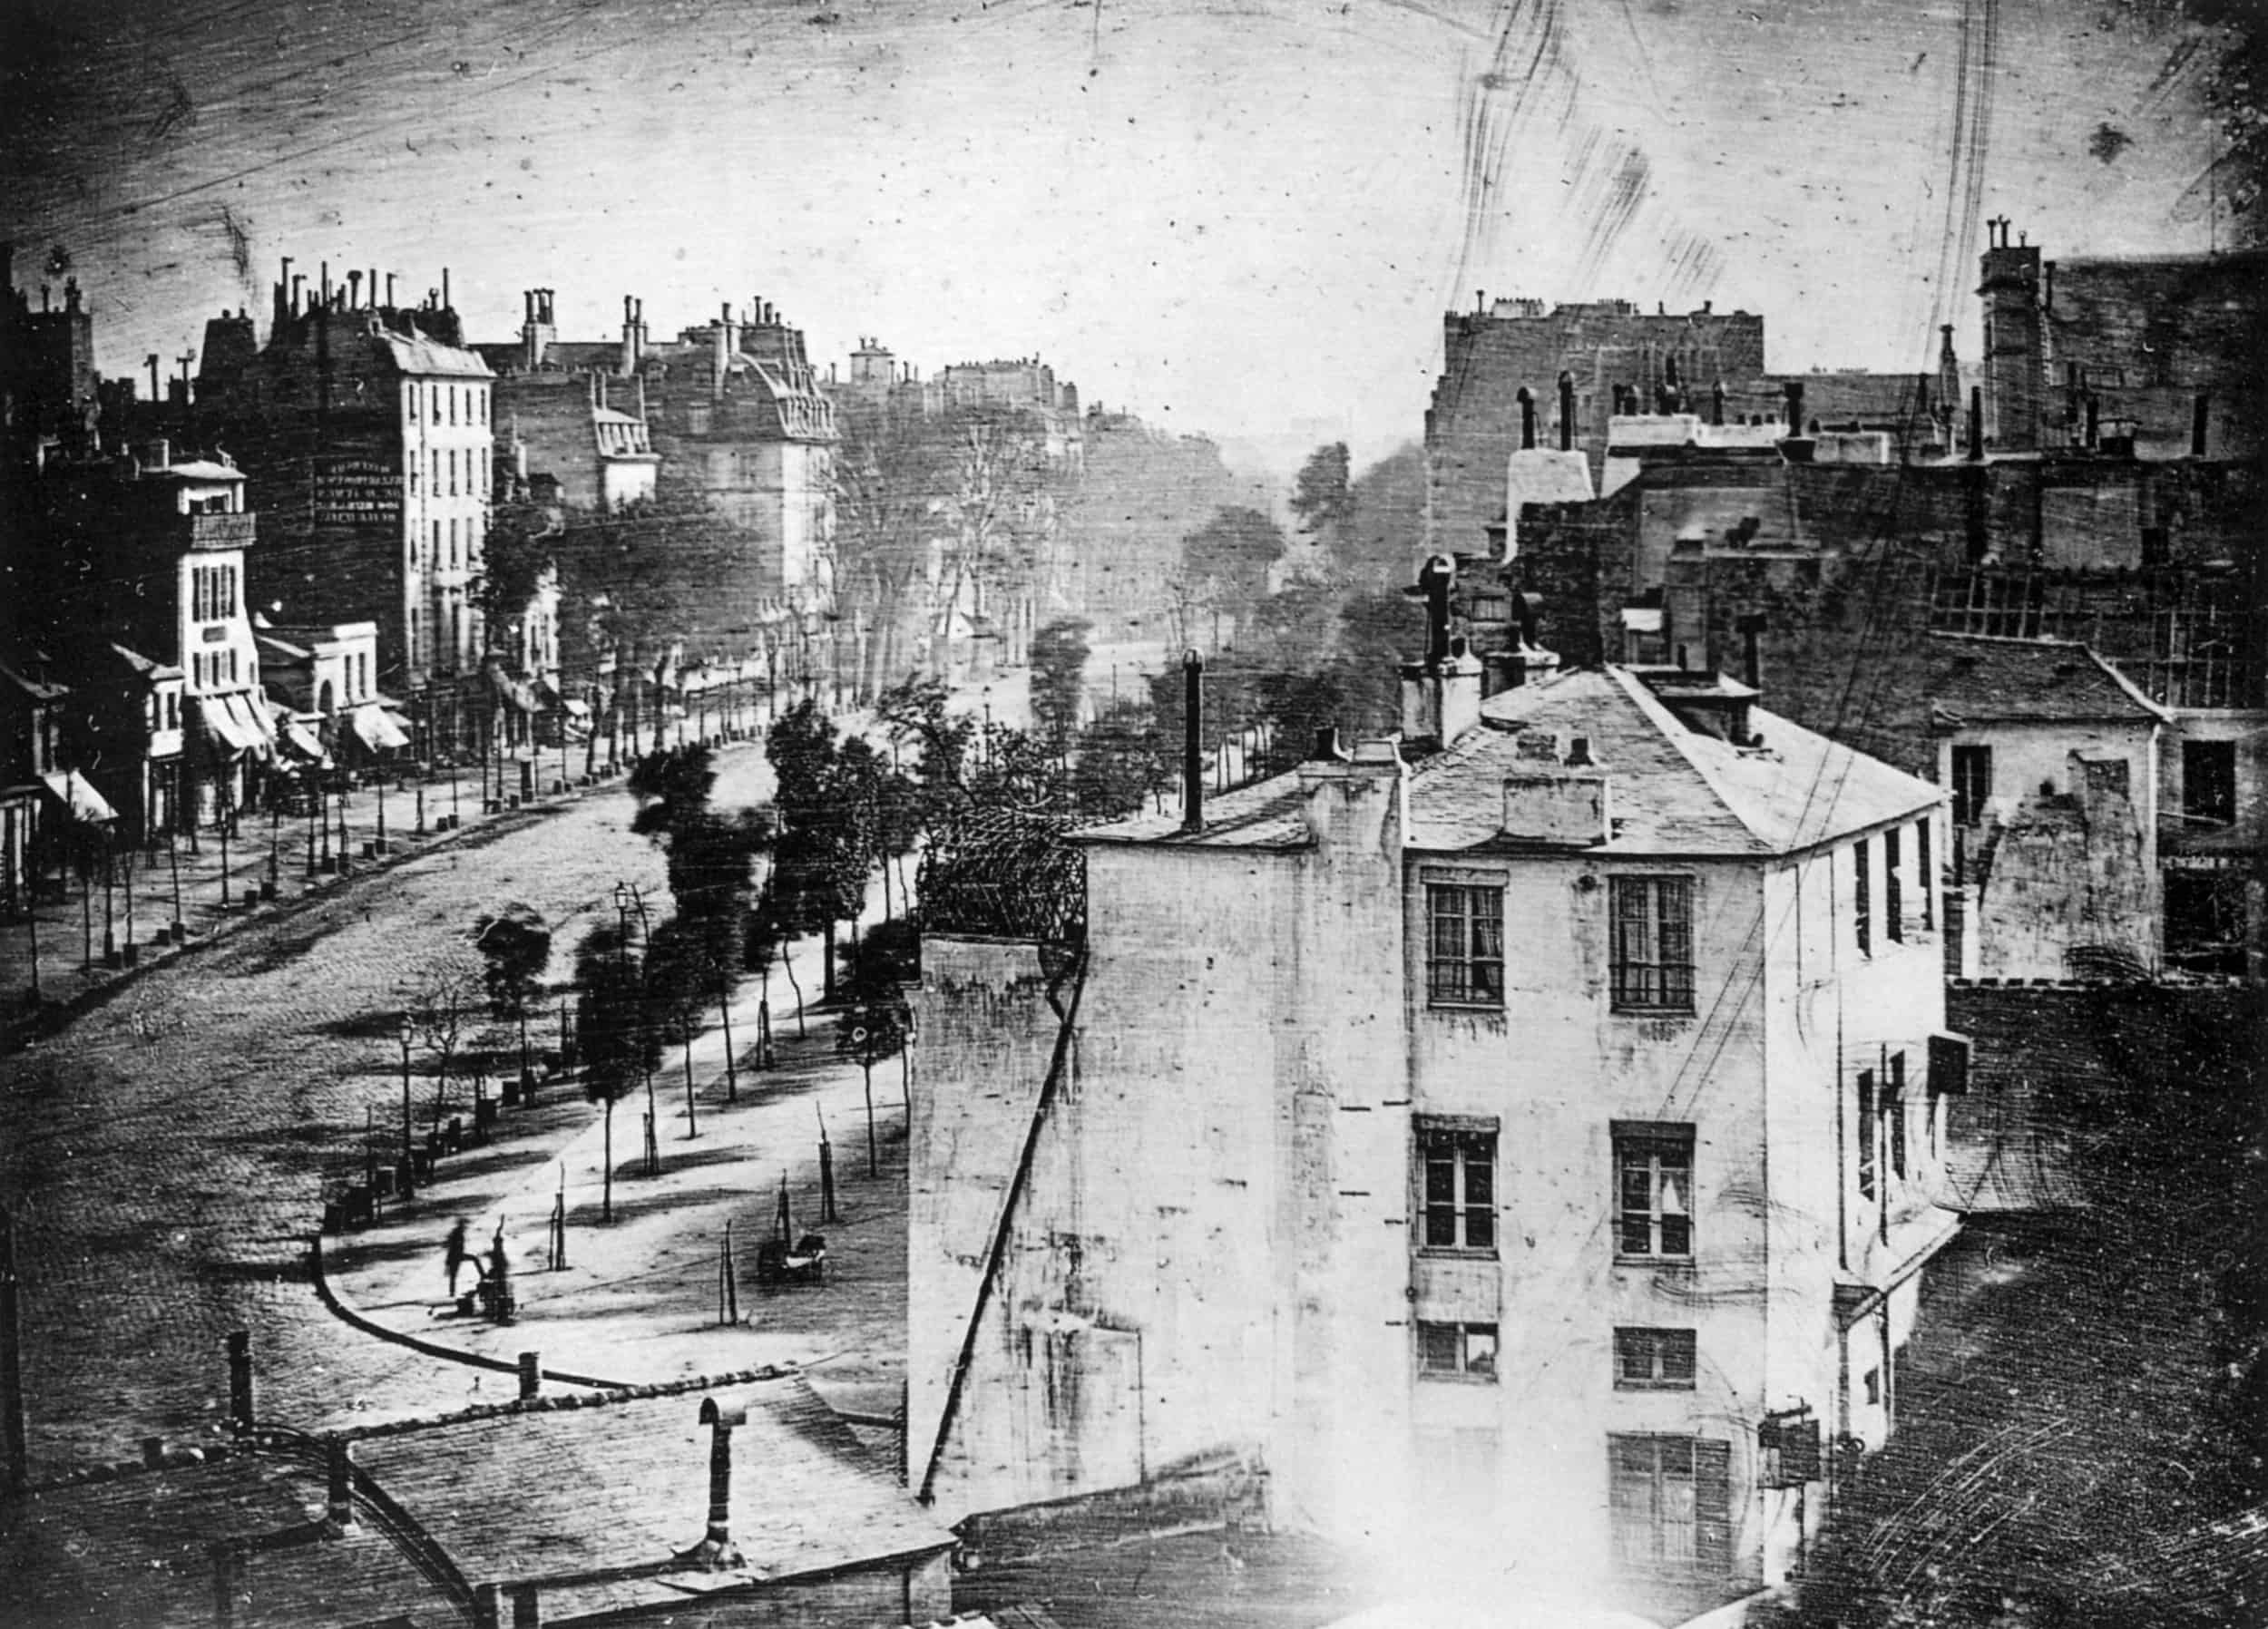 Louis-Jacques-Mande Daguerre – famous photographer